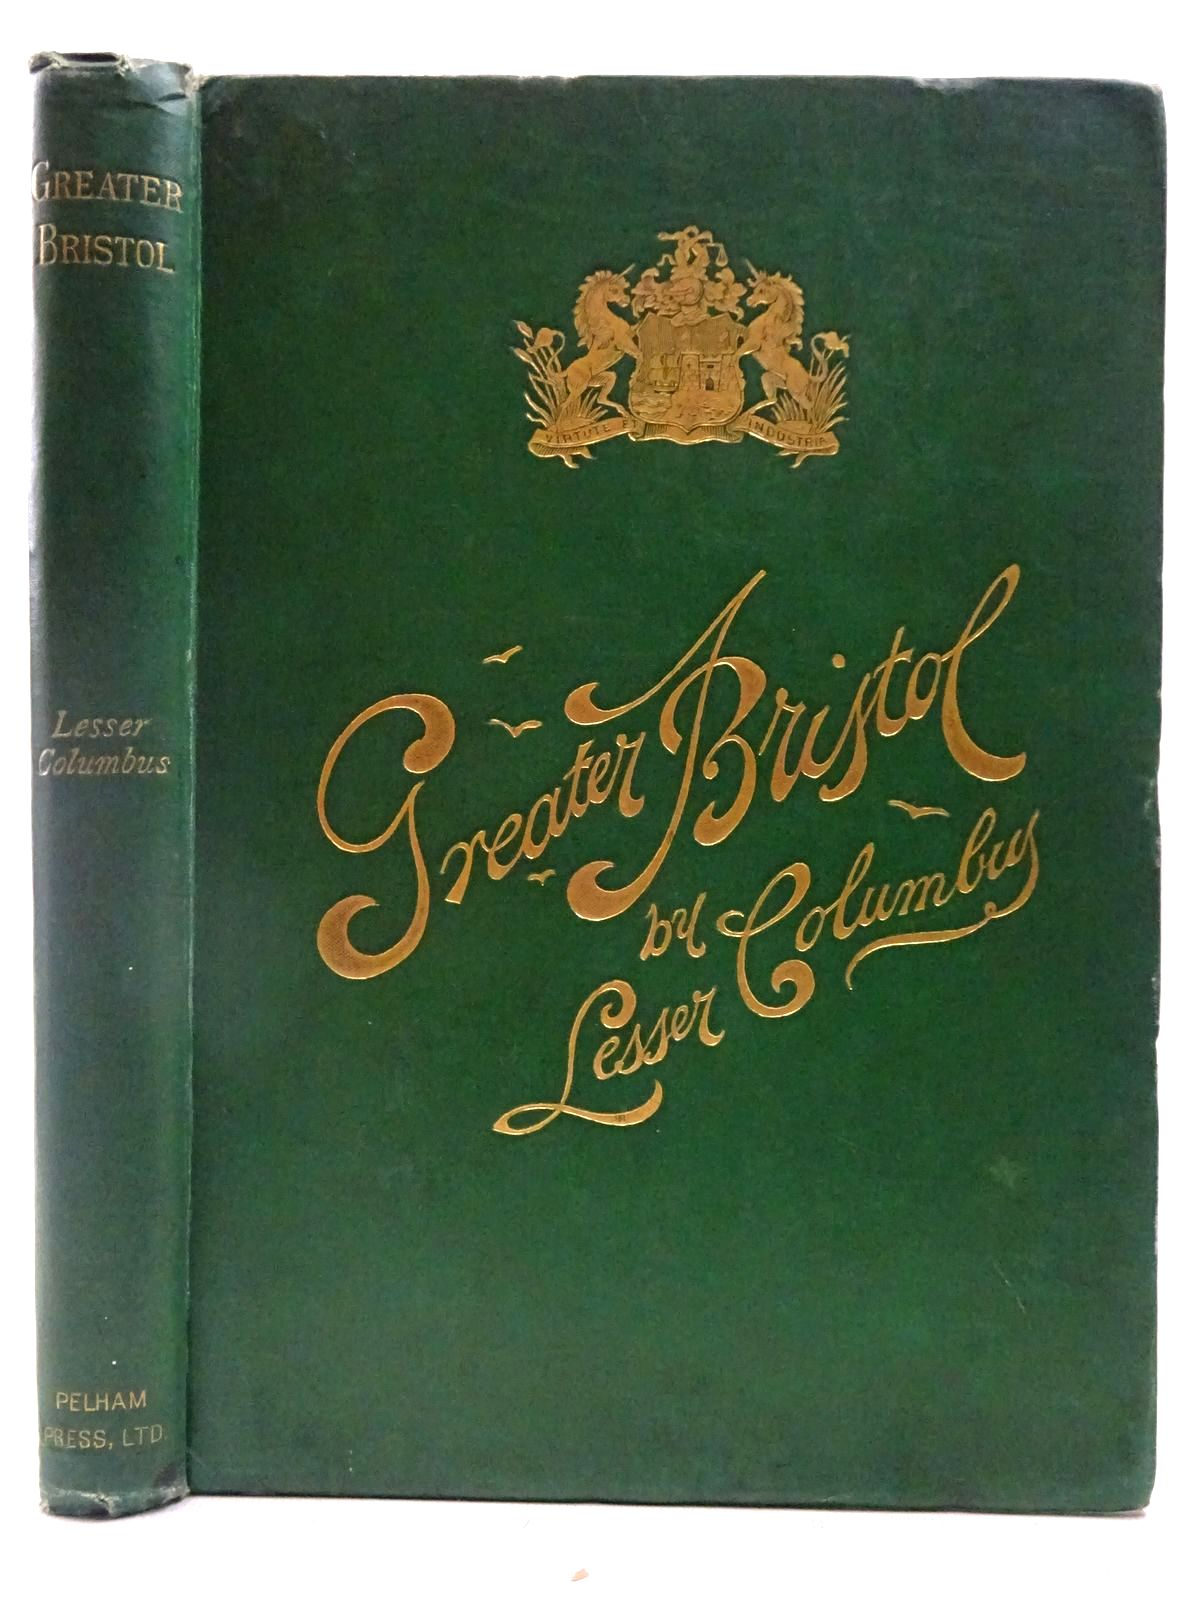 Photo of GREATER BRISTOL written by Columbus, Lesser published by The Pelham Press Ltd (STOCK CODE: 2127619)  for sale by Stella & Rose's Books